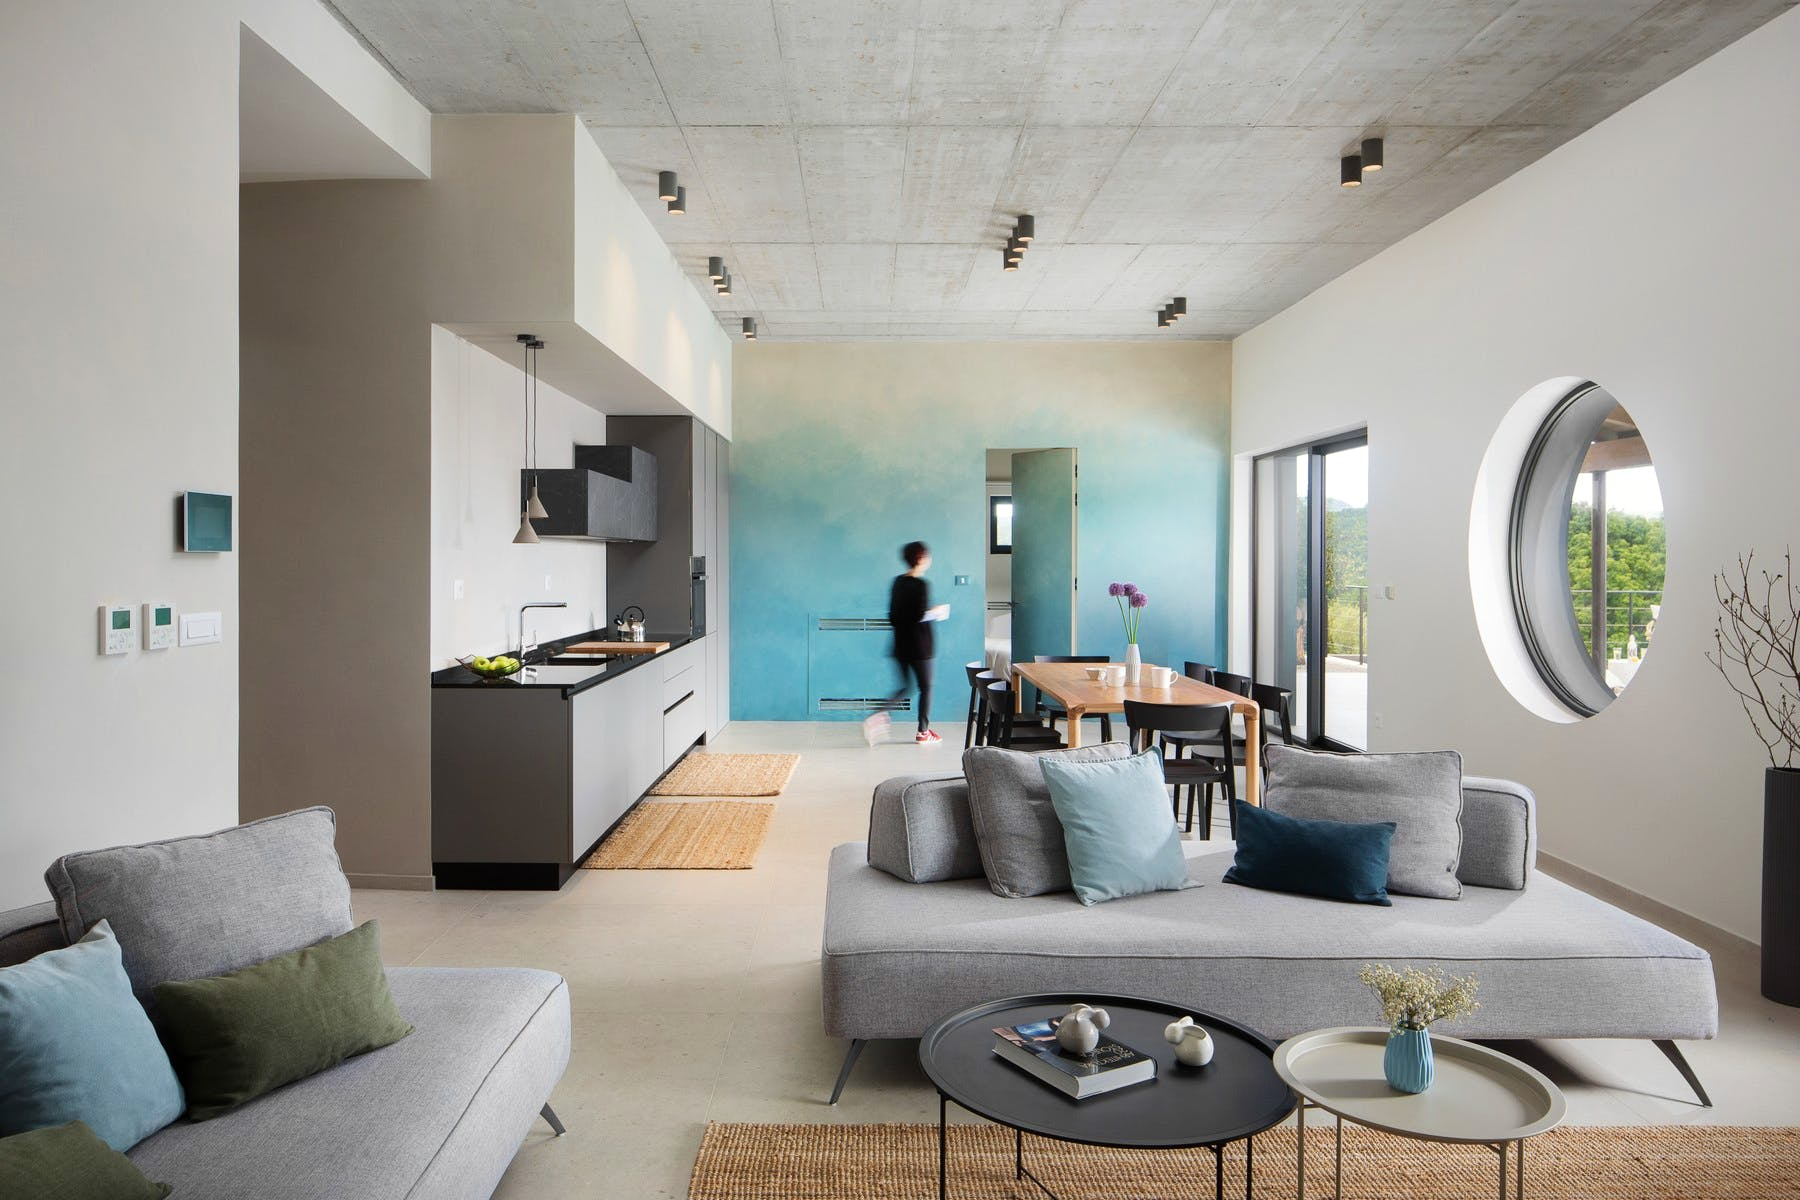 OPen space living area